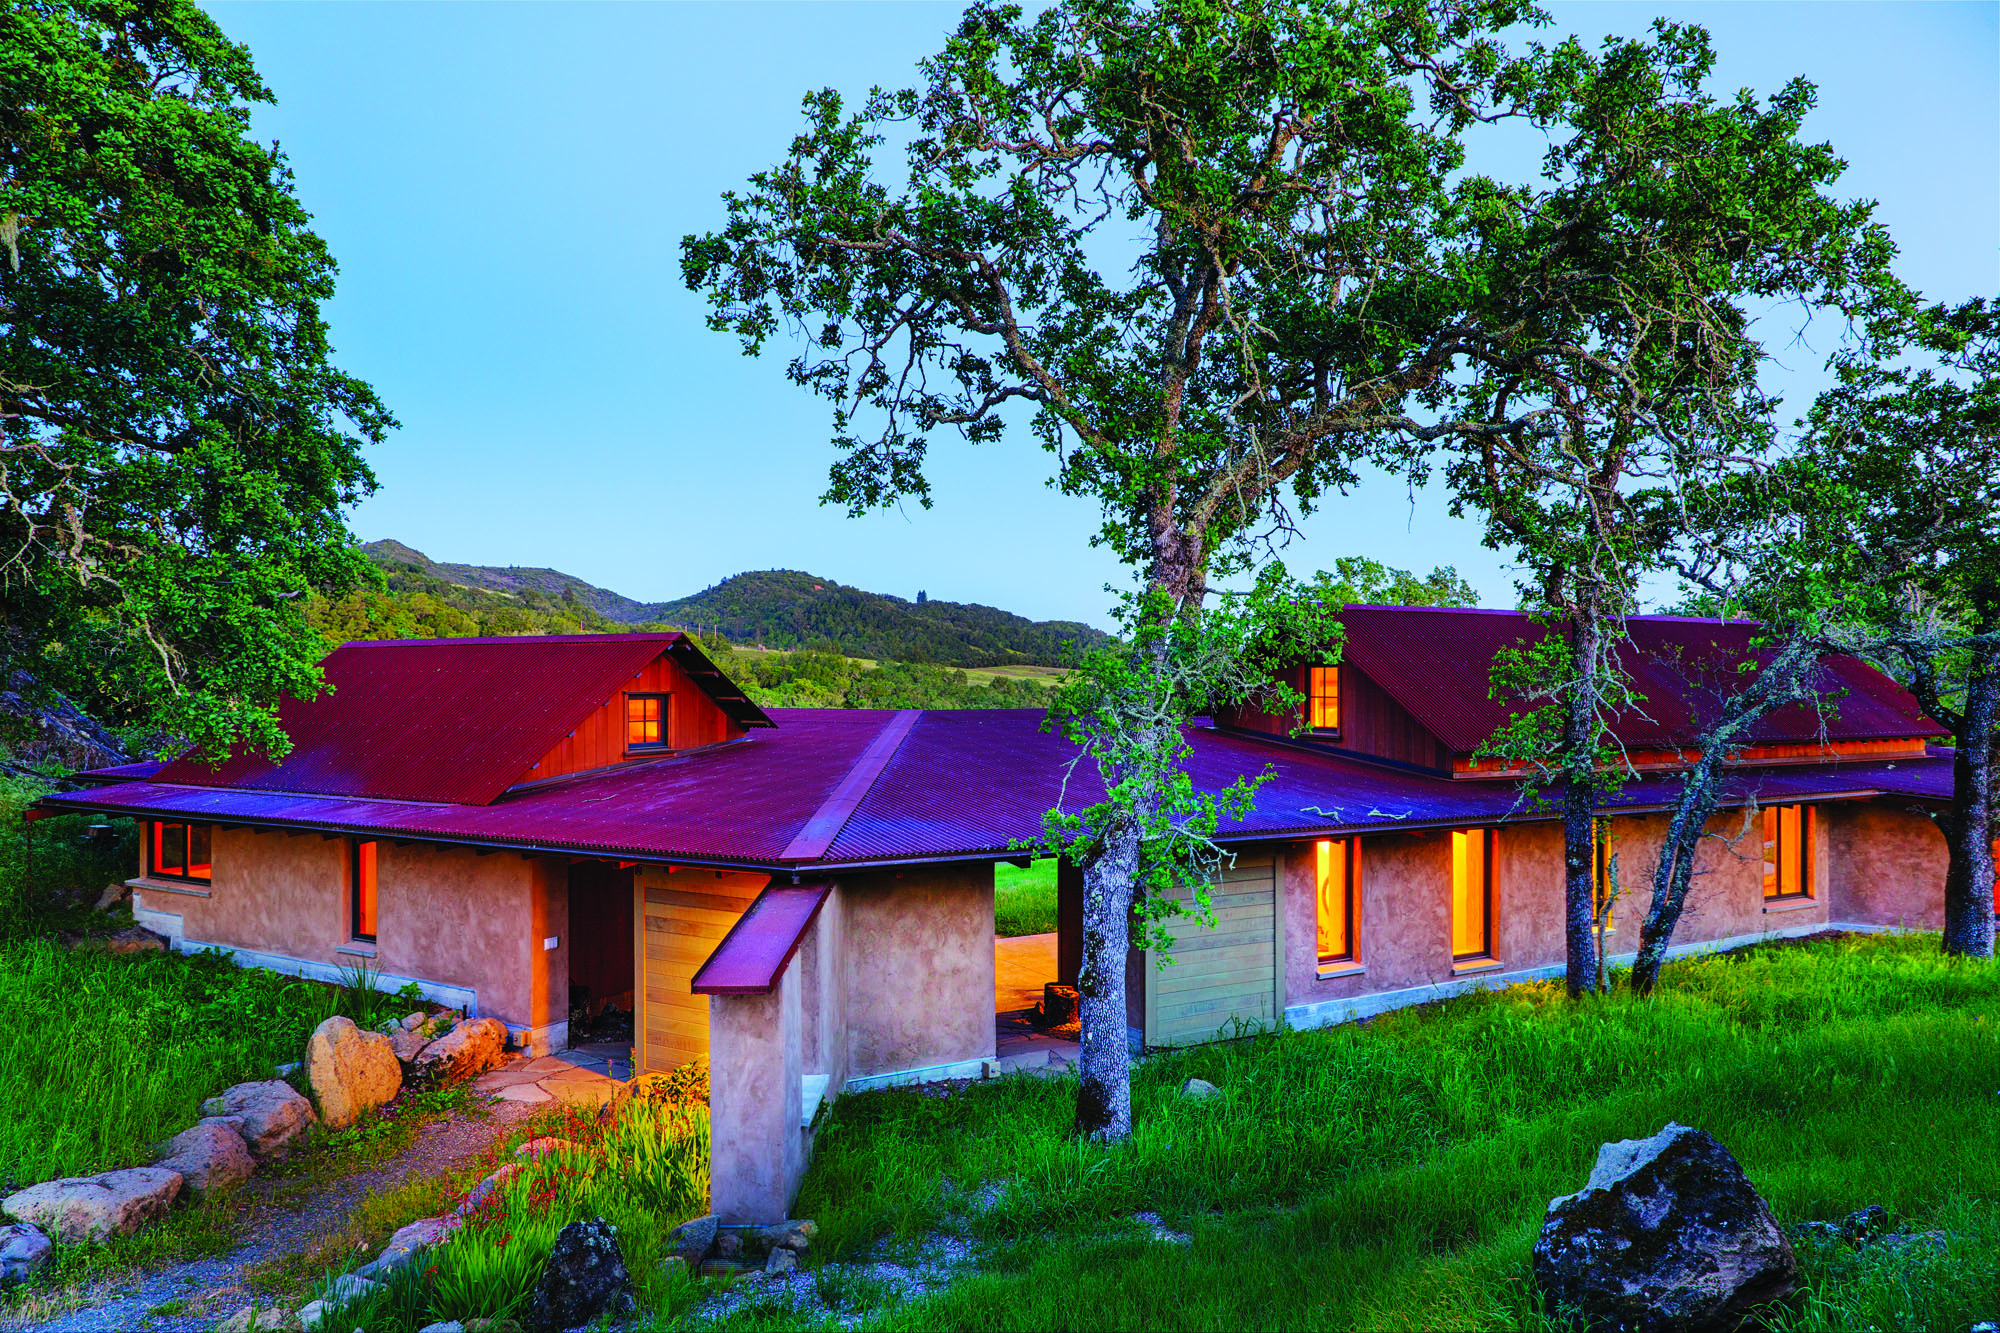 The house designed by Arkin Tilt is based on historical cabins. The result is an ultra green house in Sonoma.